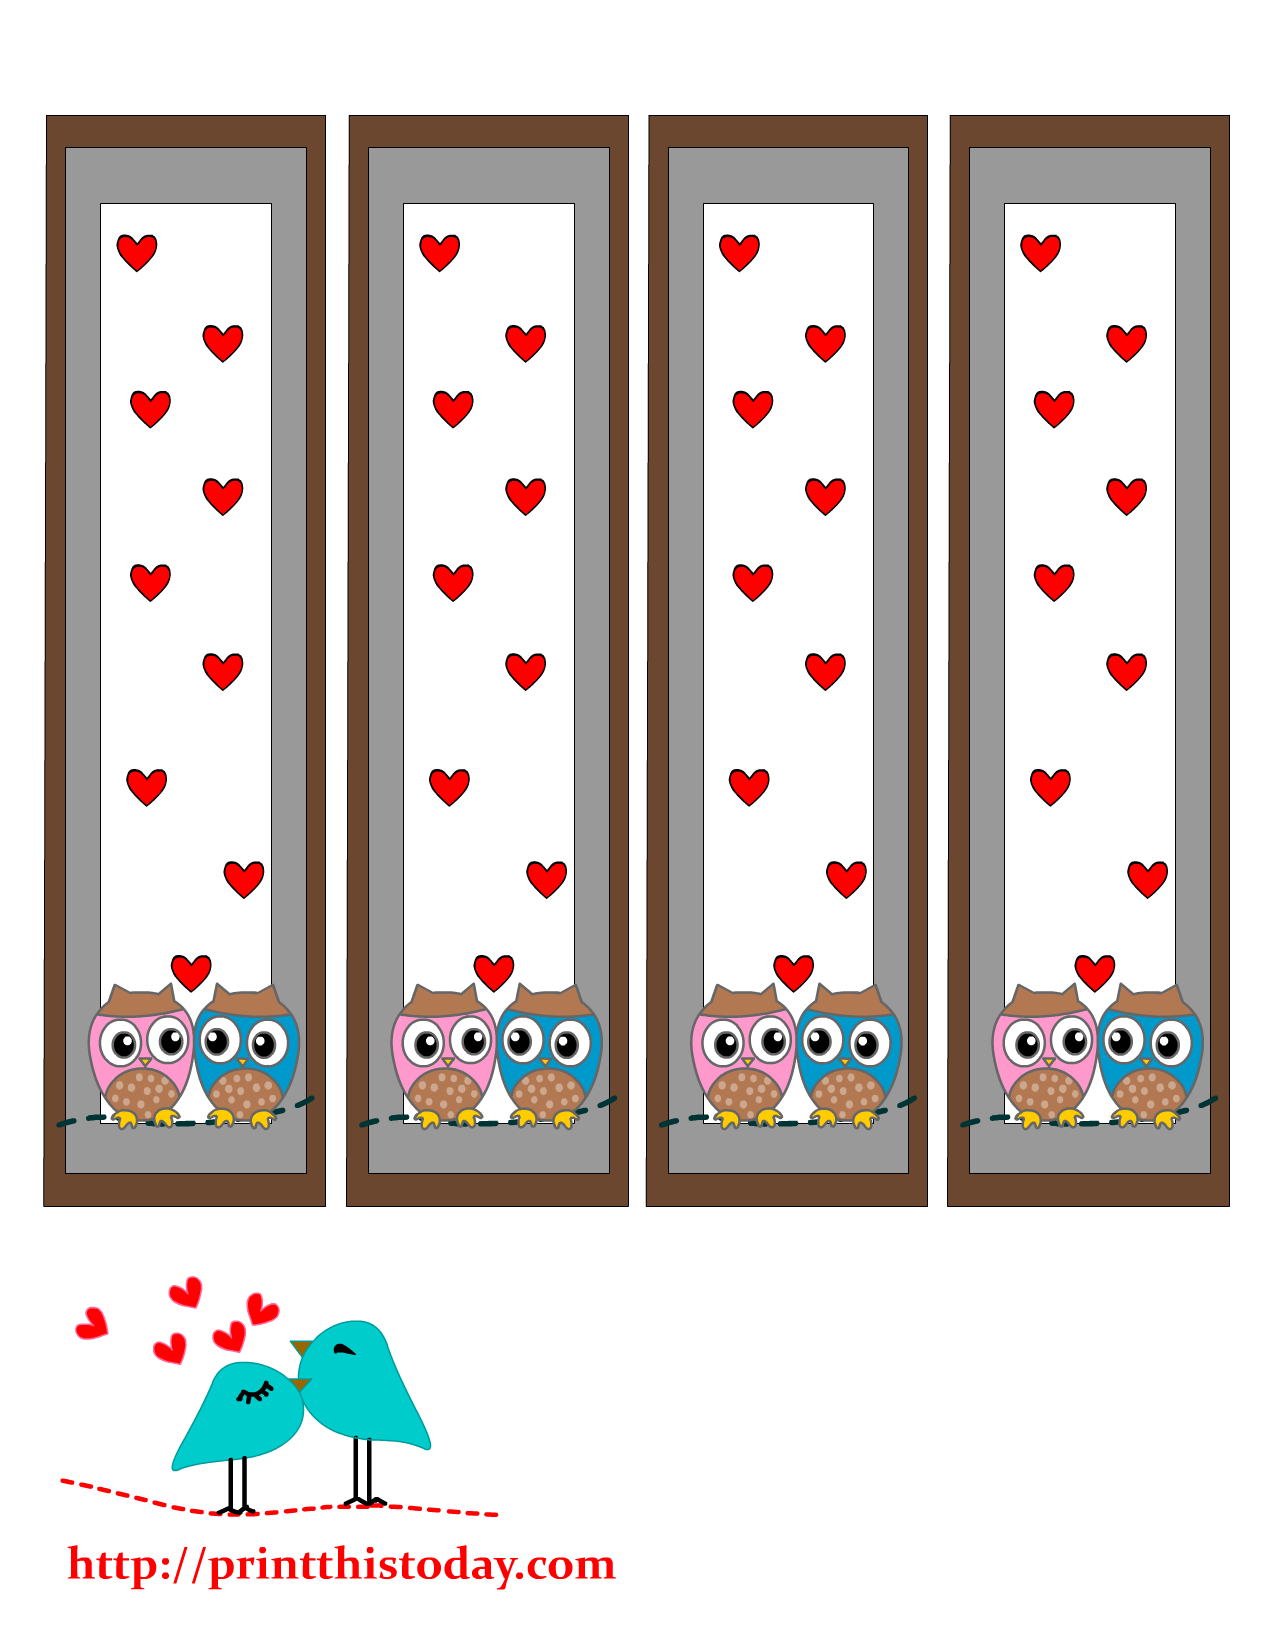 graphic regarding Cute Printable Bookmarks named Bookmarks providing Lovely Owls